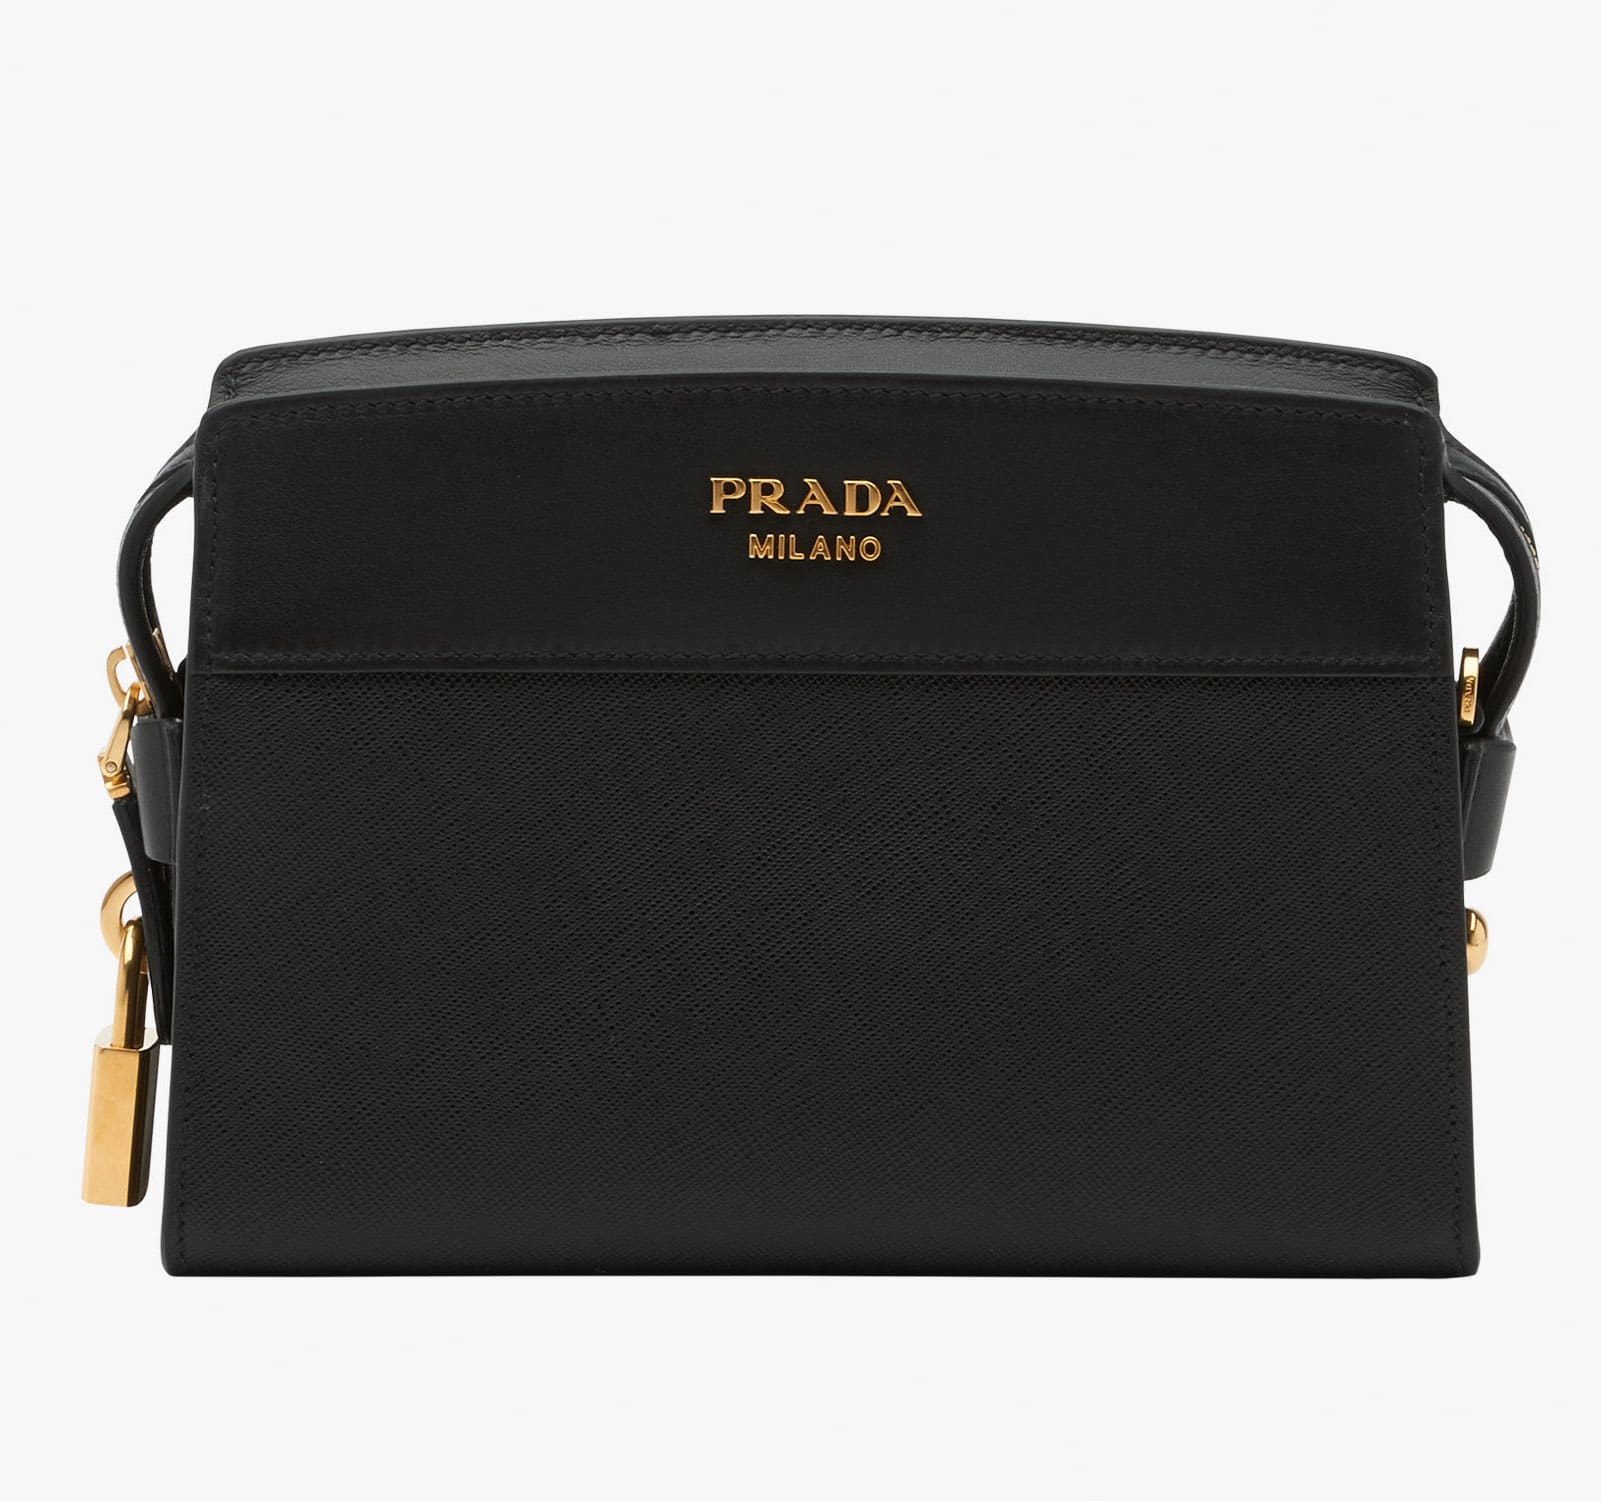 prada monogram bag